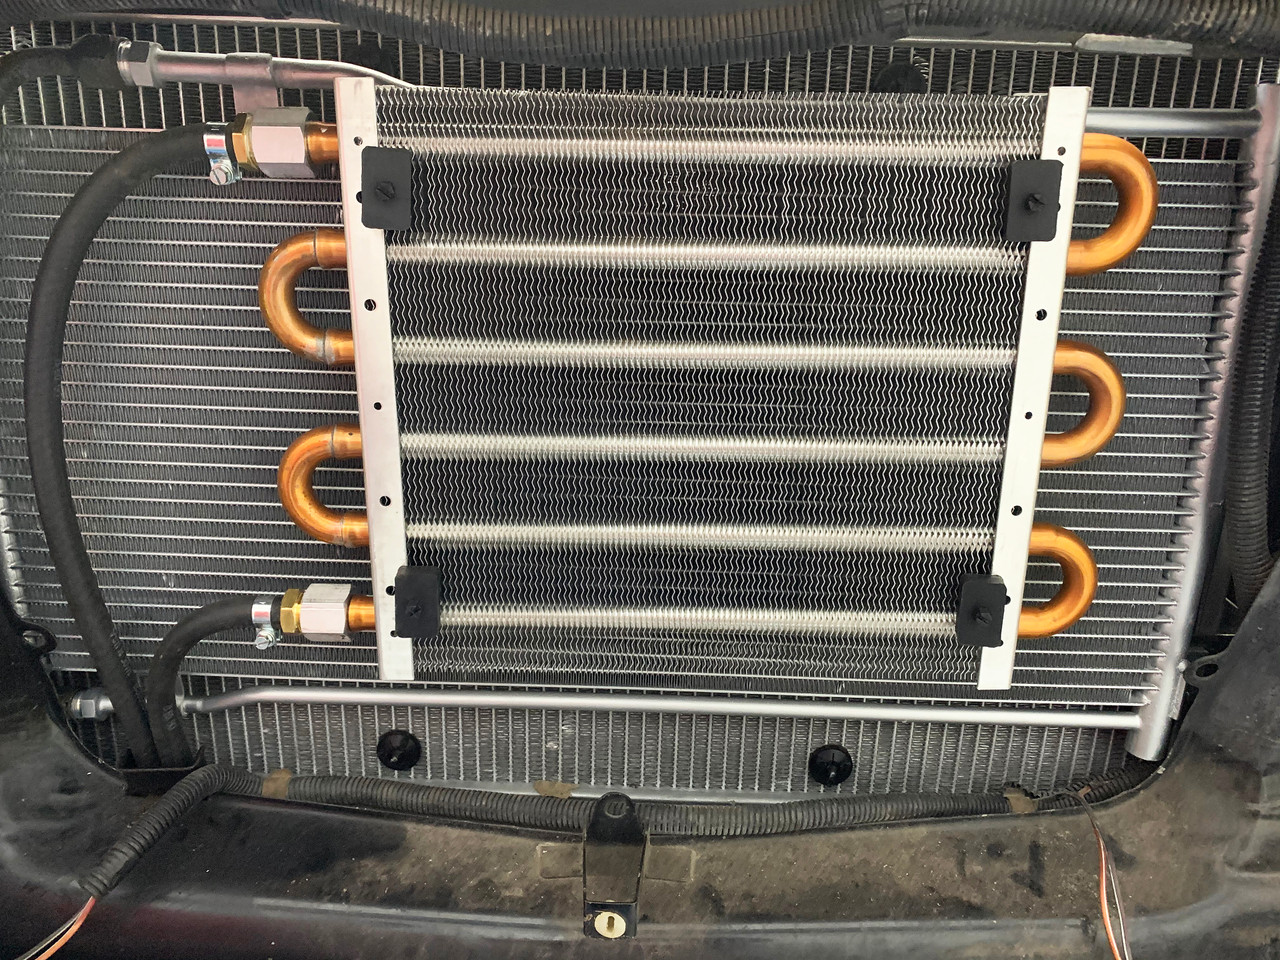 TRANS COOLER ON ACTUAL GRAND WAGONEER INSTALLED